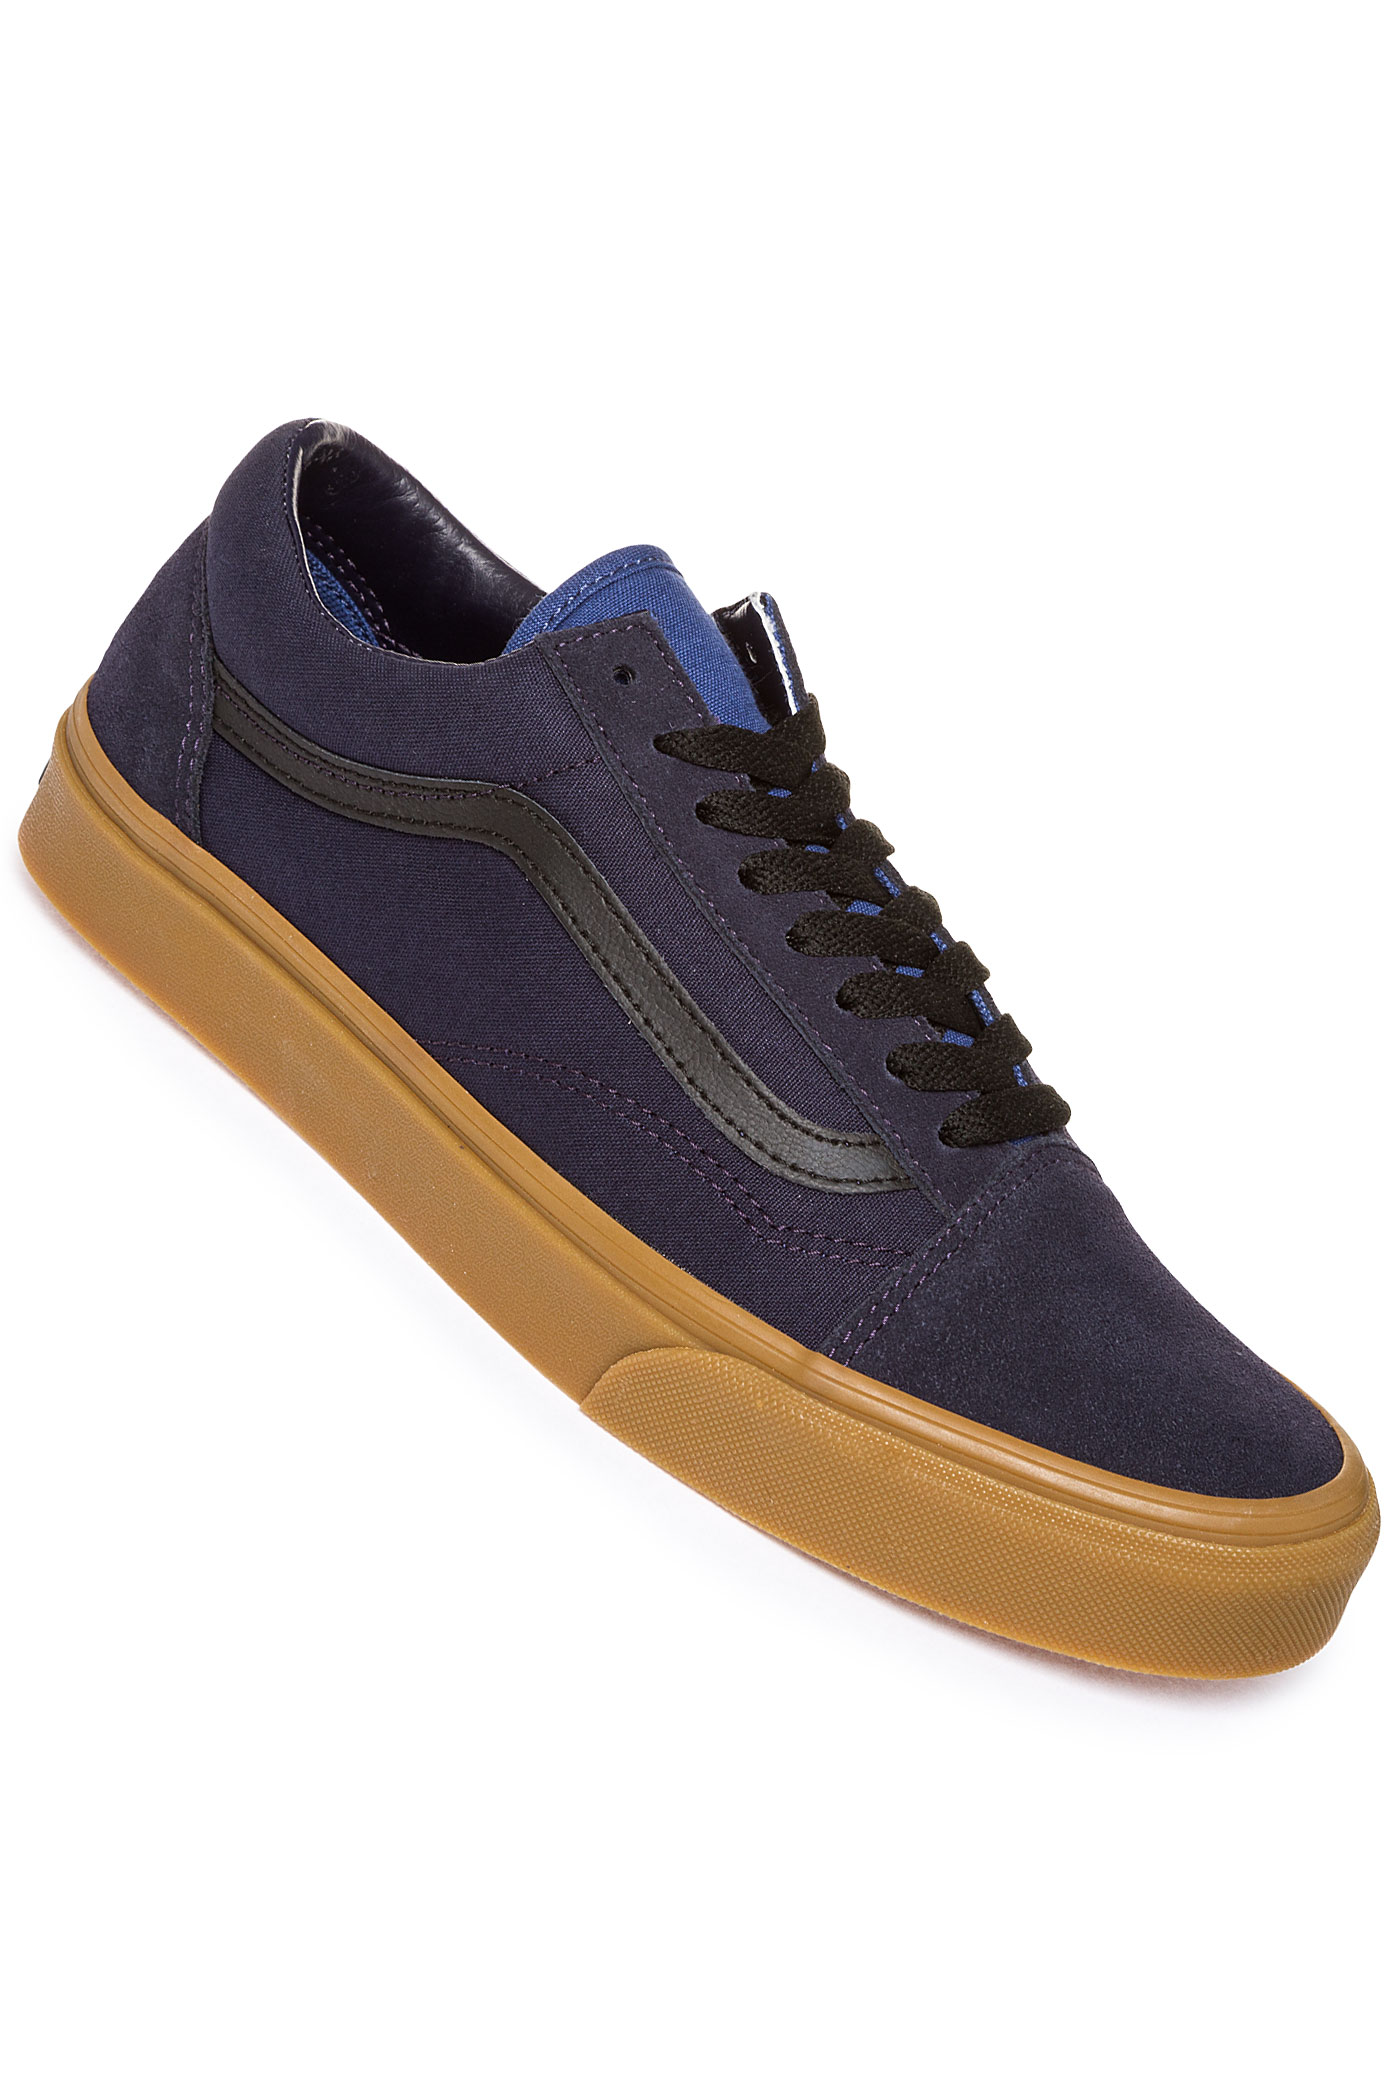 Skool Old Sky True Vans Navy Chaussurenight Gum wvN0Om8n